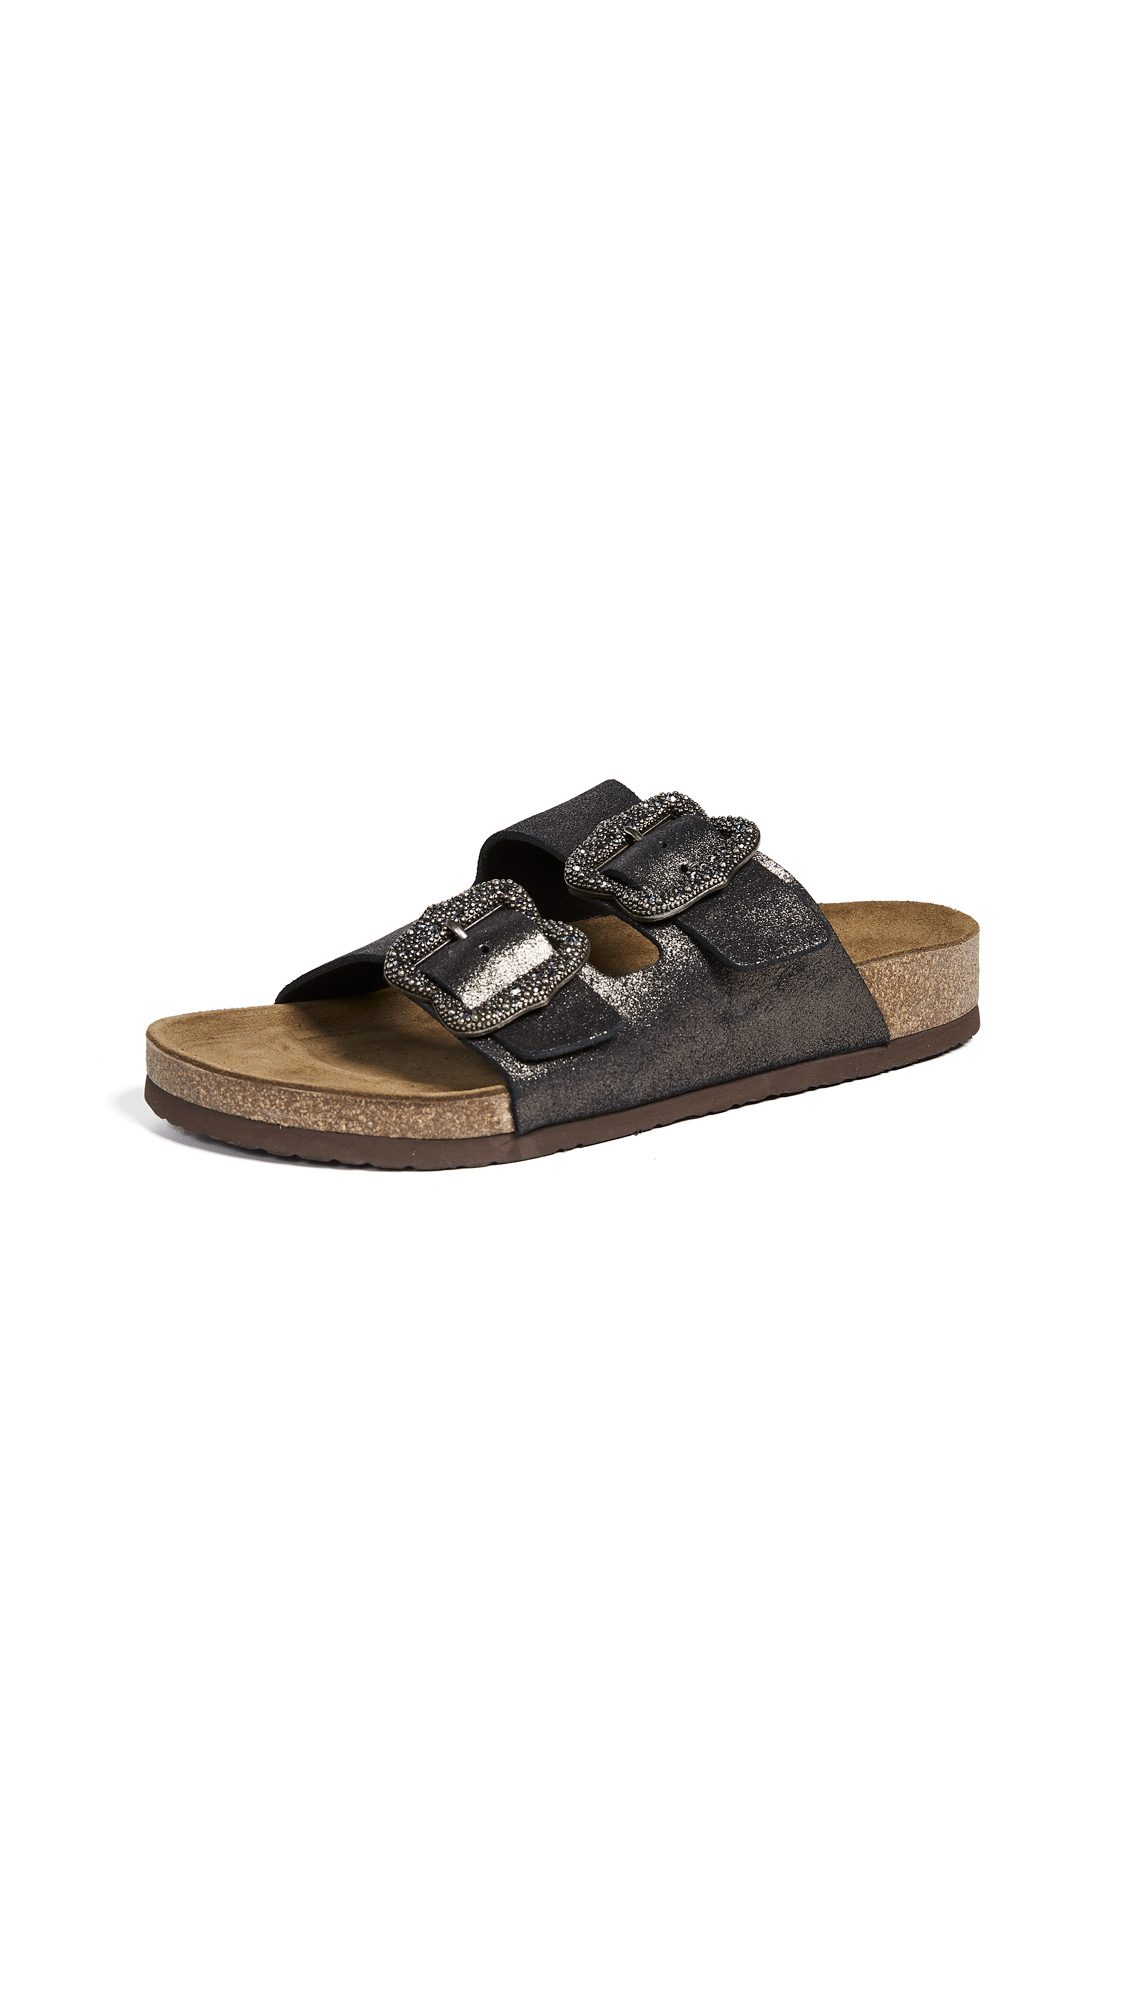 Marc Jacobs Grunge Two Strap Sandals - Dark Silver